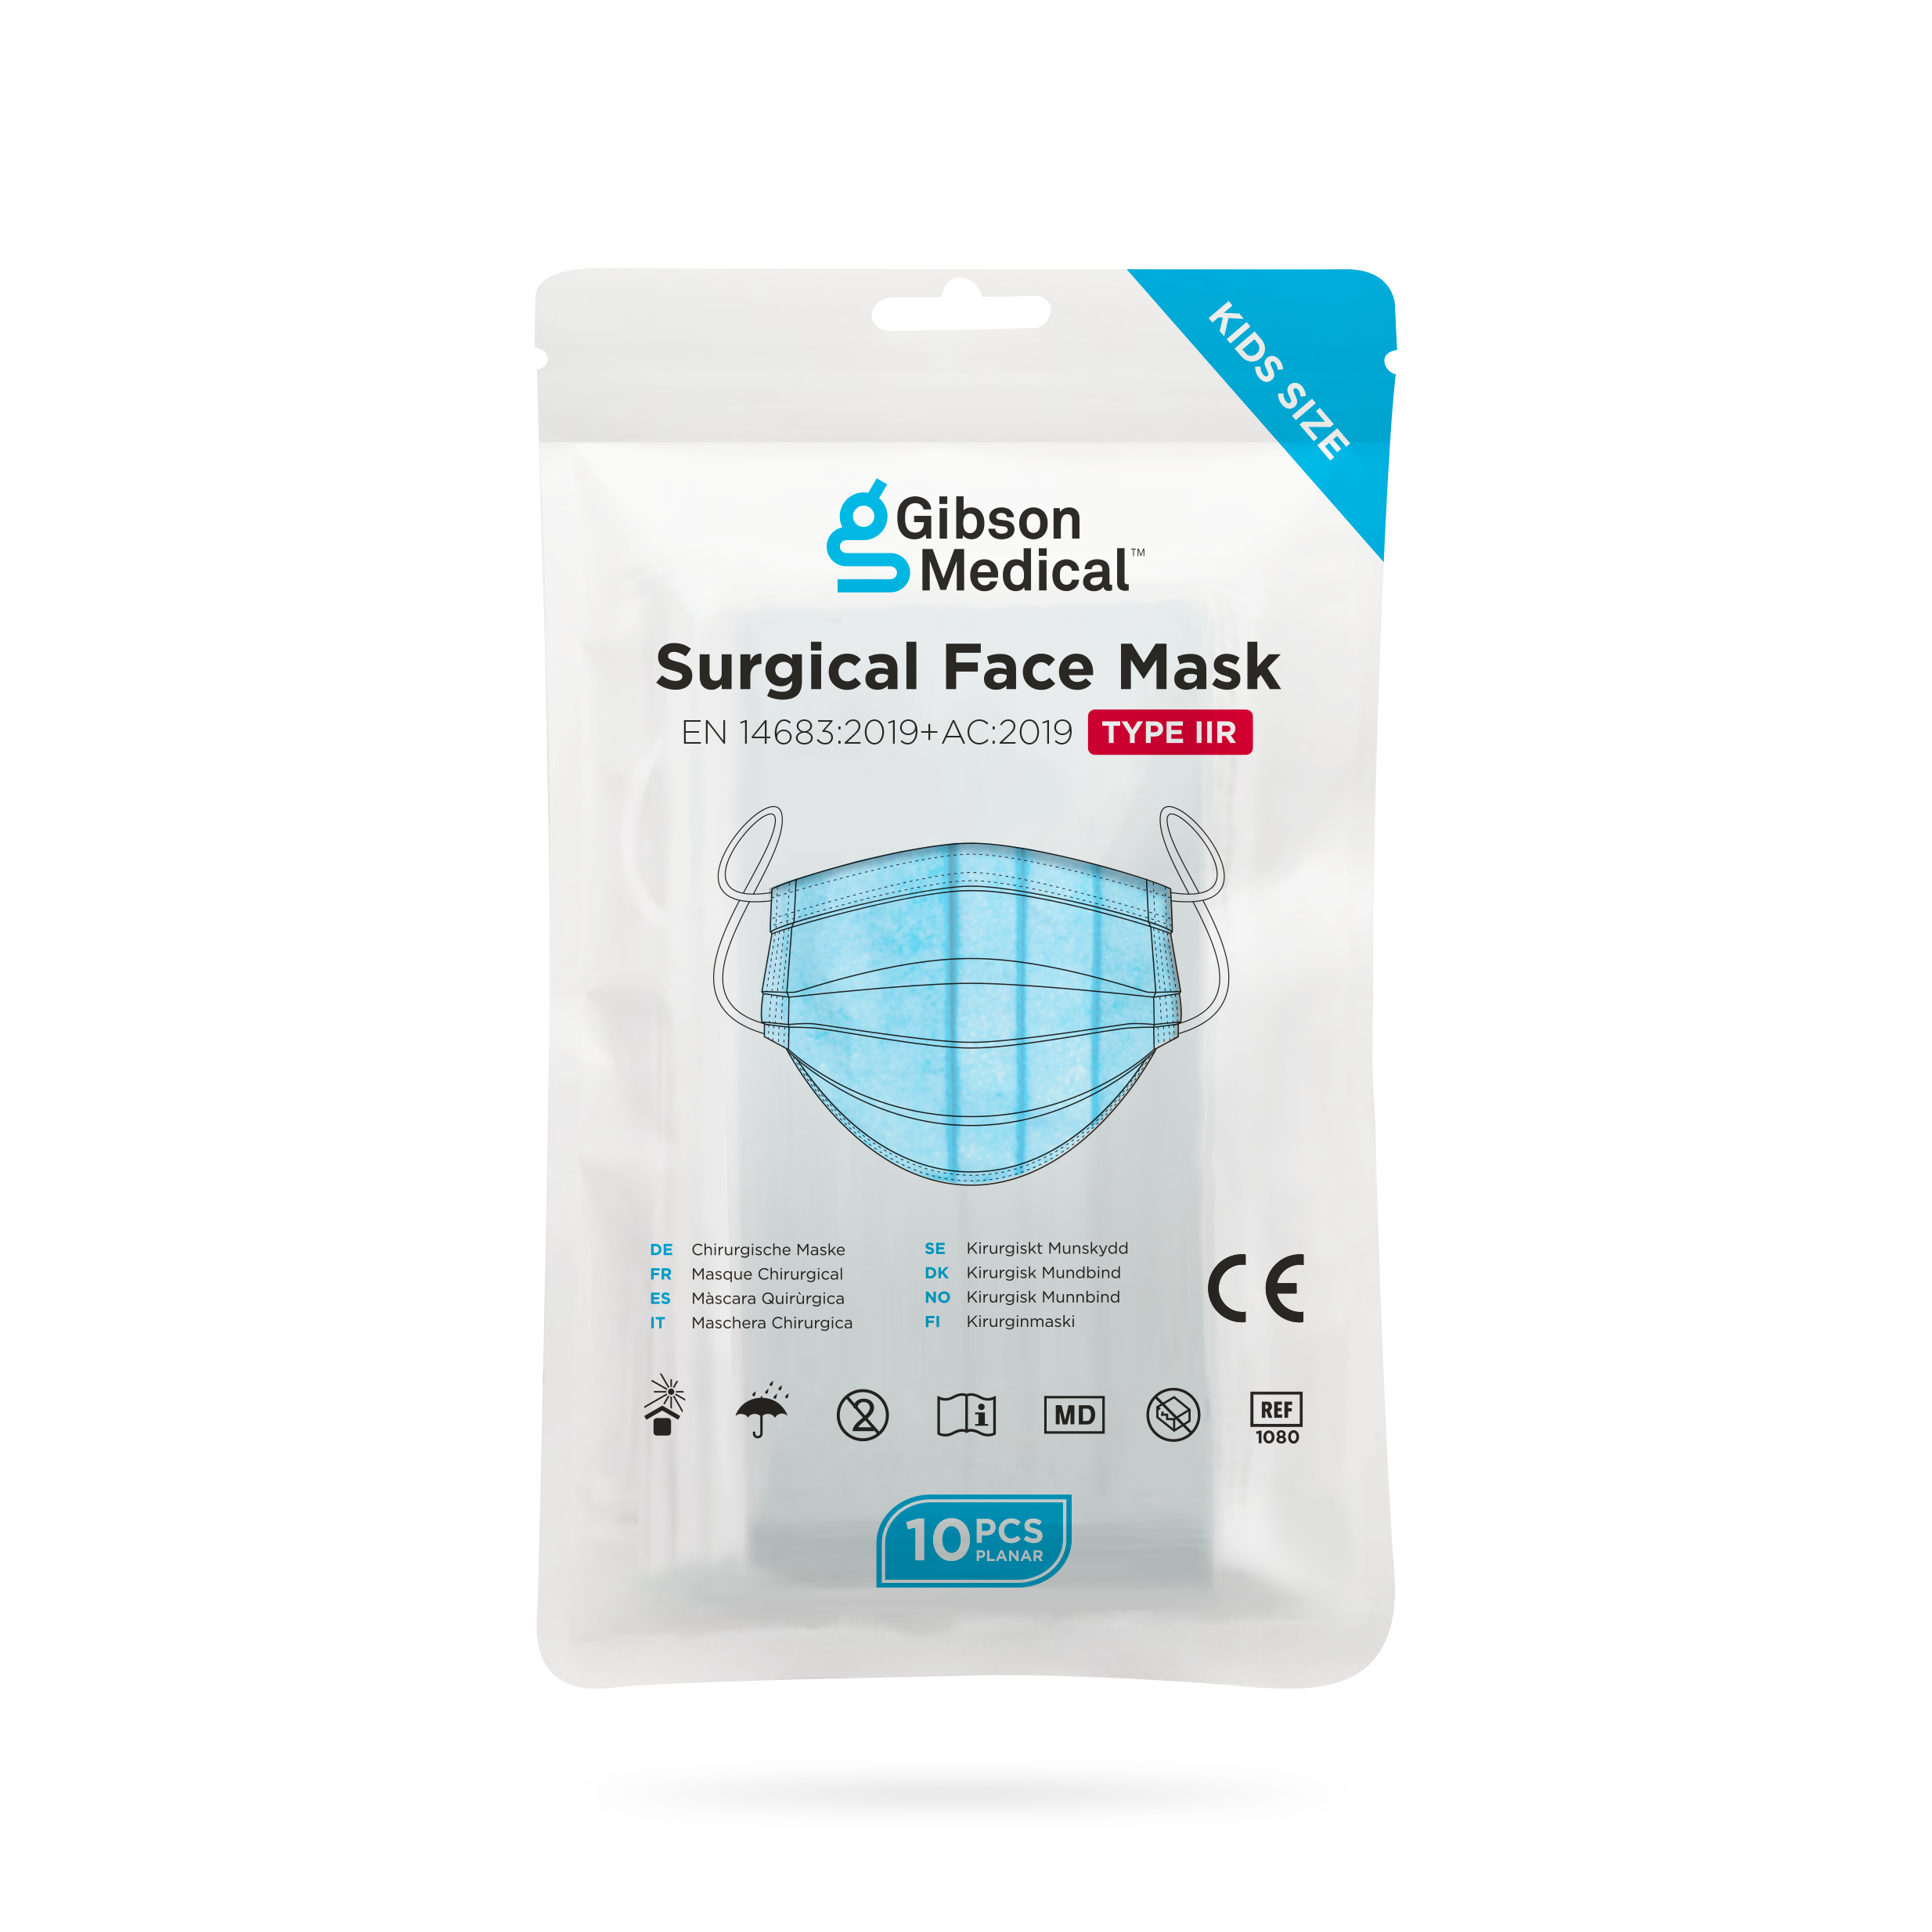 Surgical Face Mask Type IIR - 1080